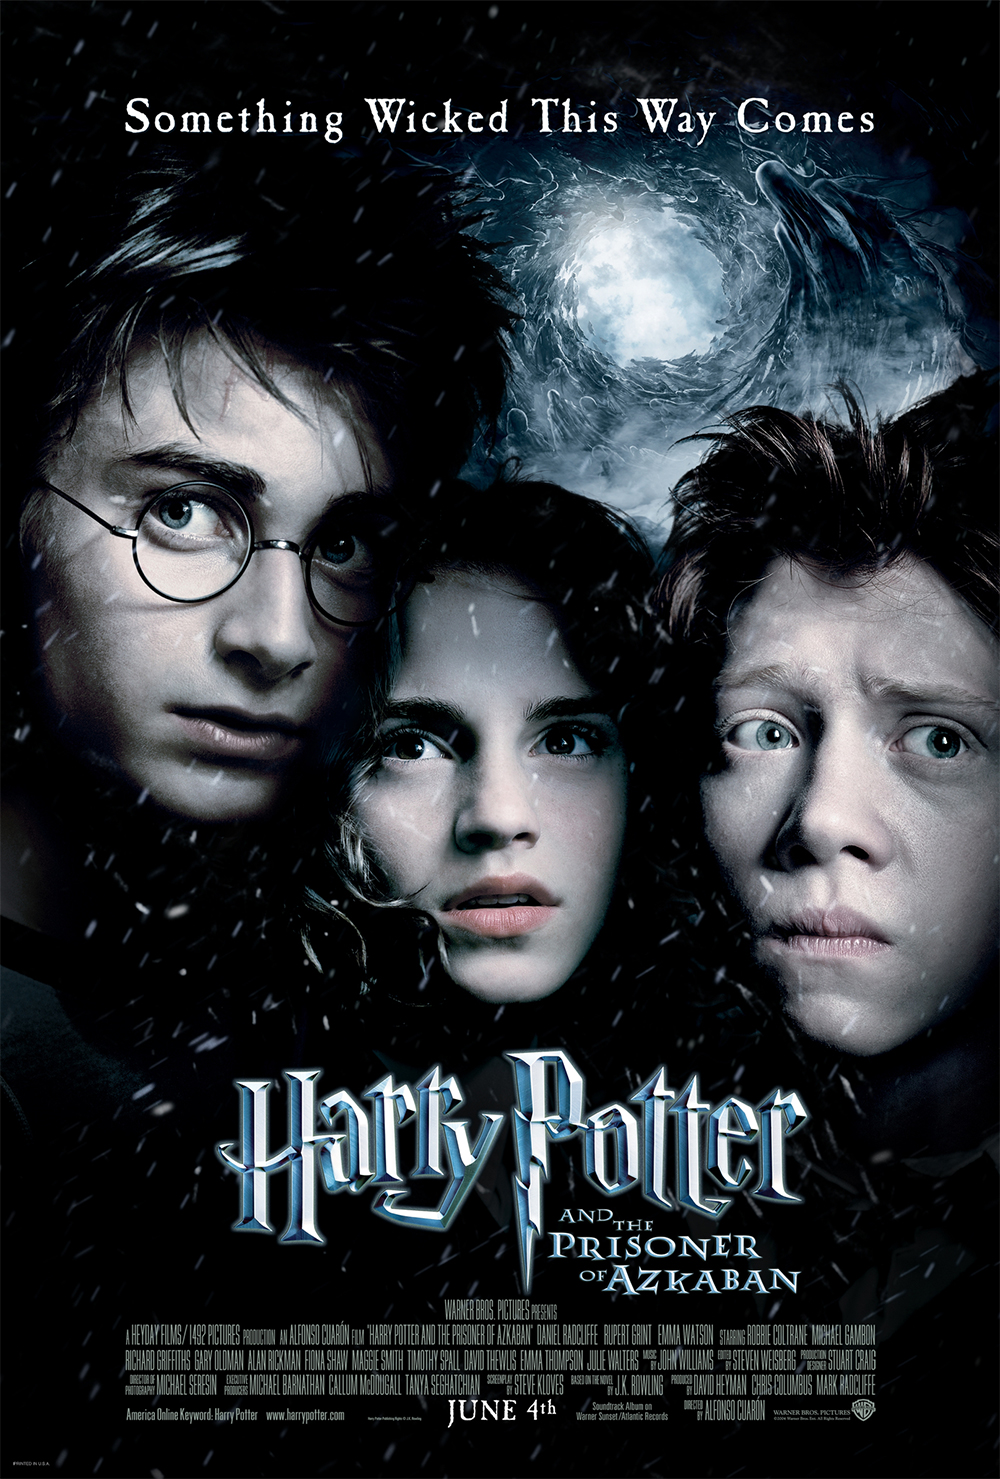 prisoner-of-azkaban-theatrical-poster-2.jpg